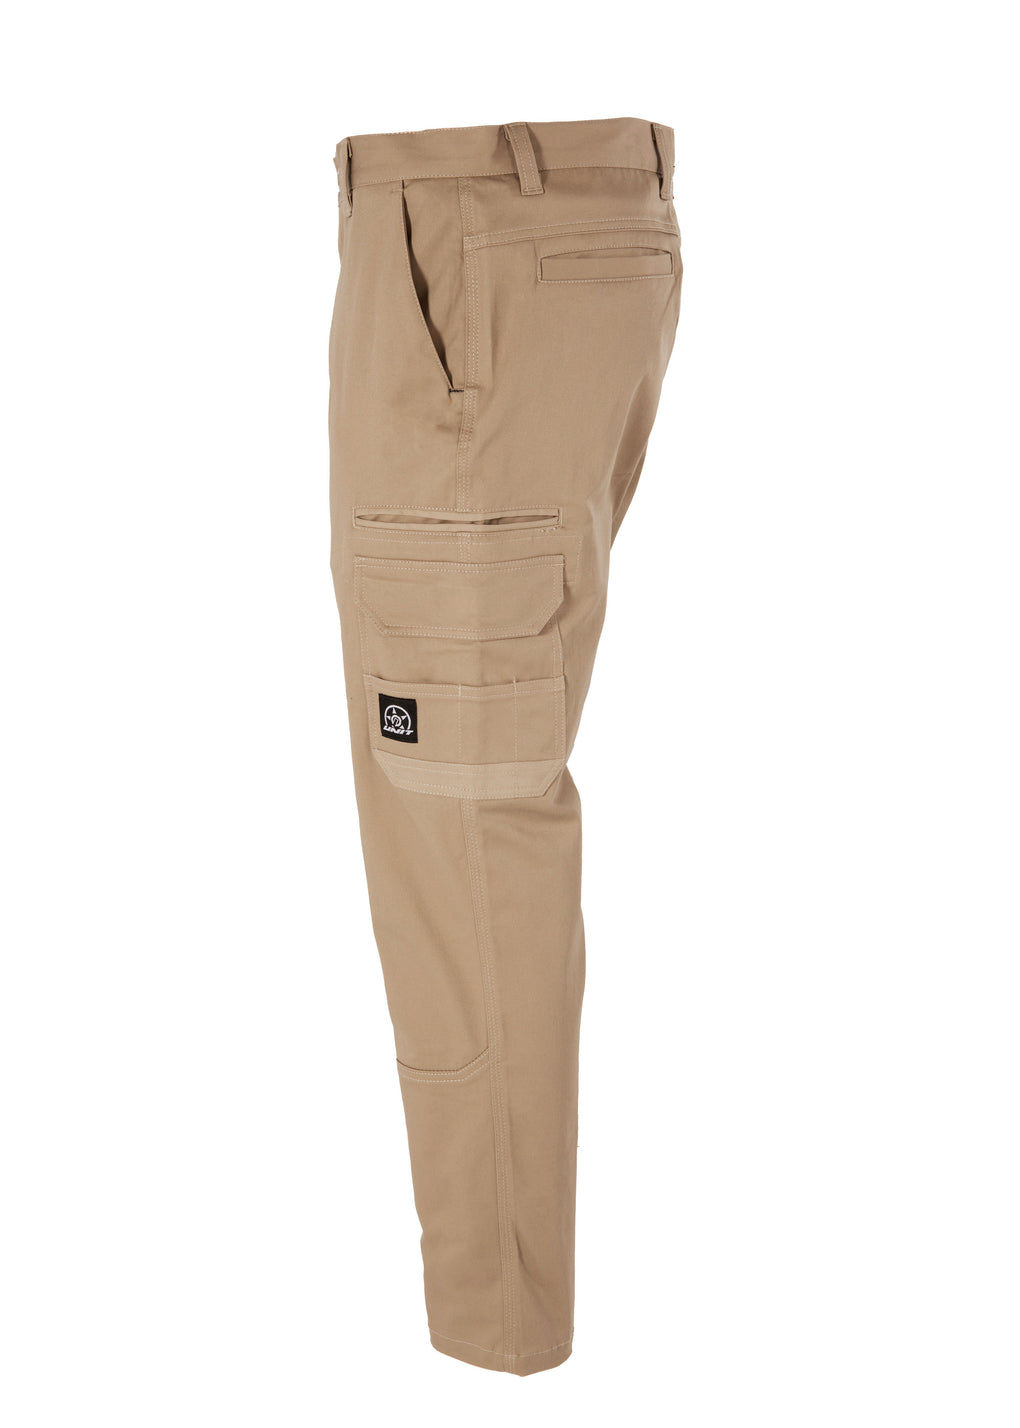 Demolition Cargo Work Pants